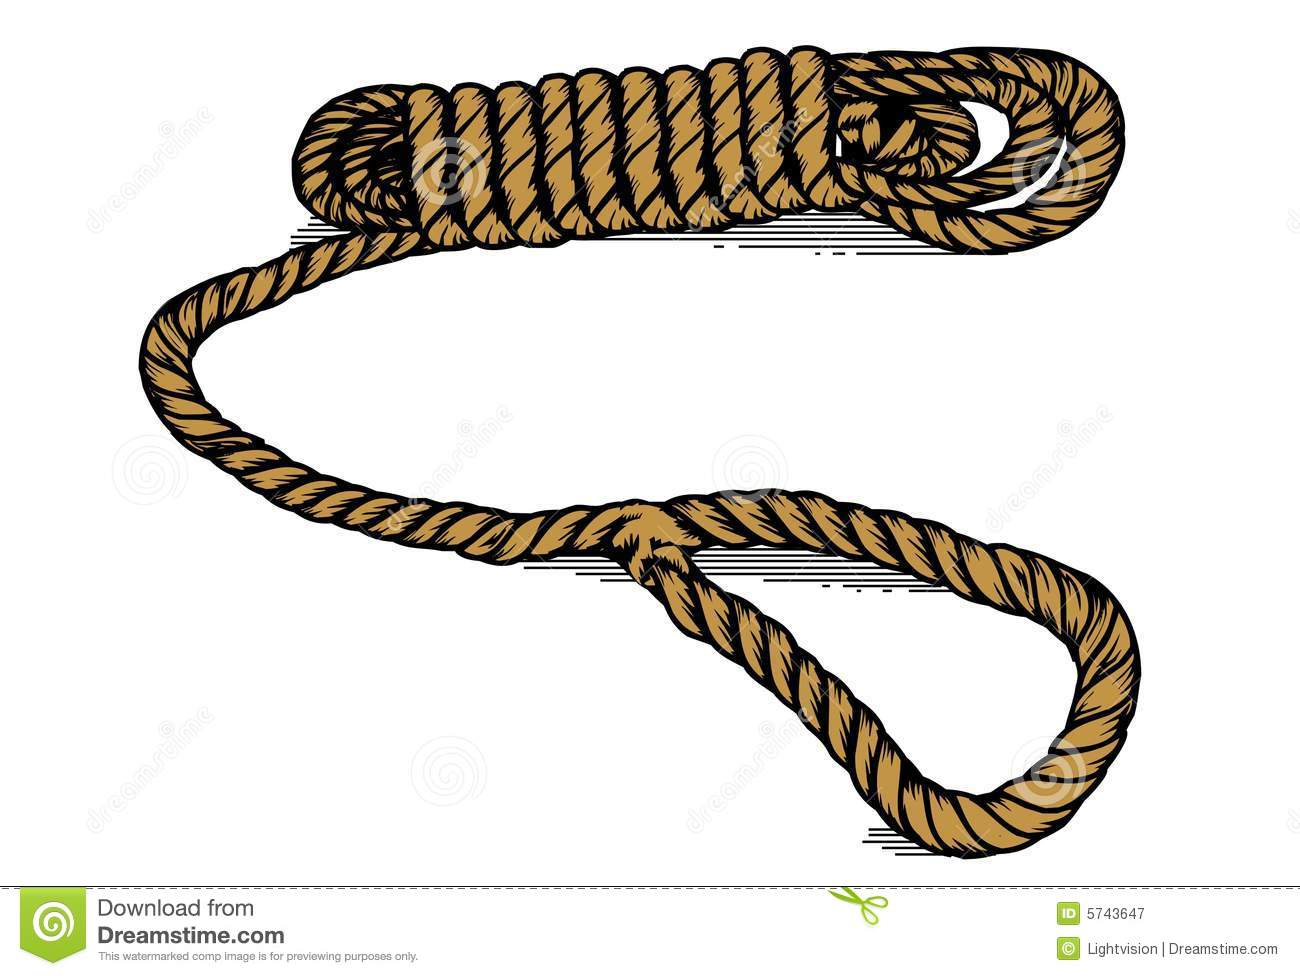 Rope clipart #19, Download drawings